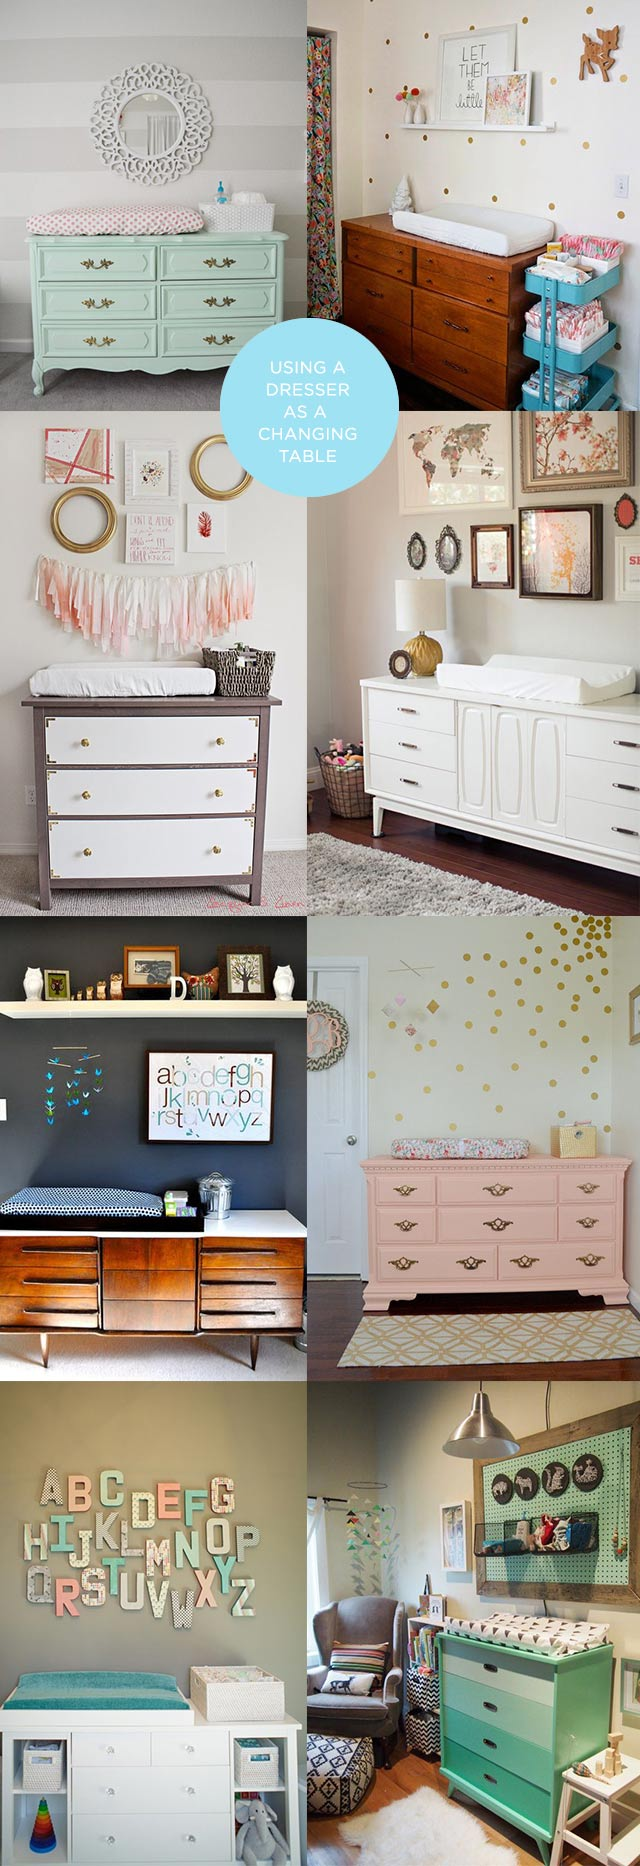 Using A Vintage Dresser As A Changing Table